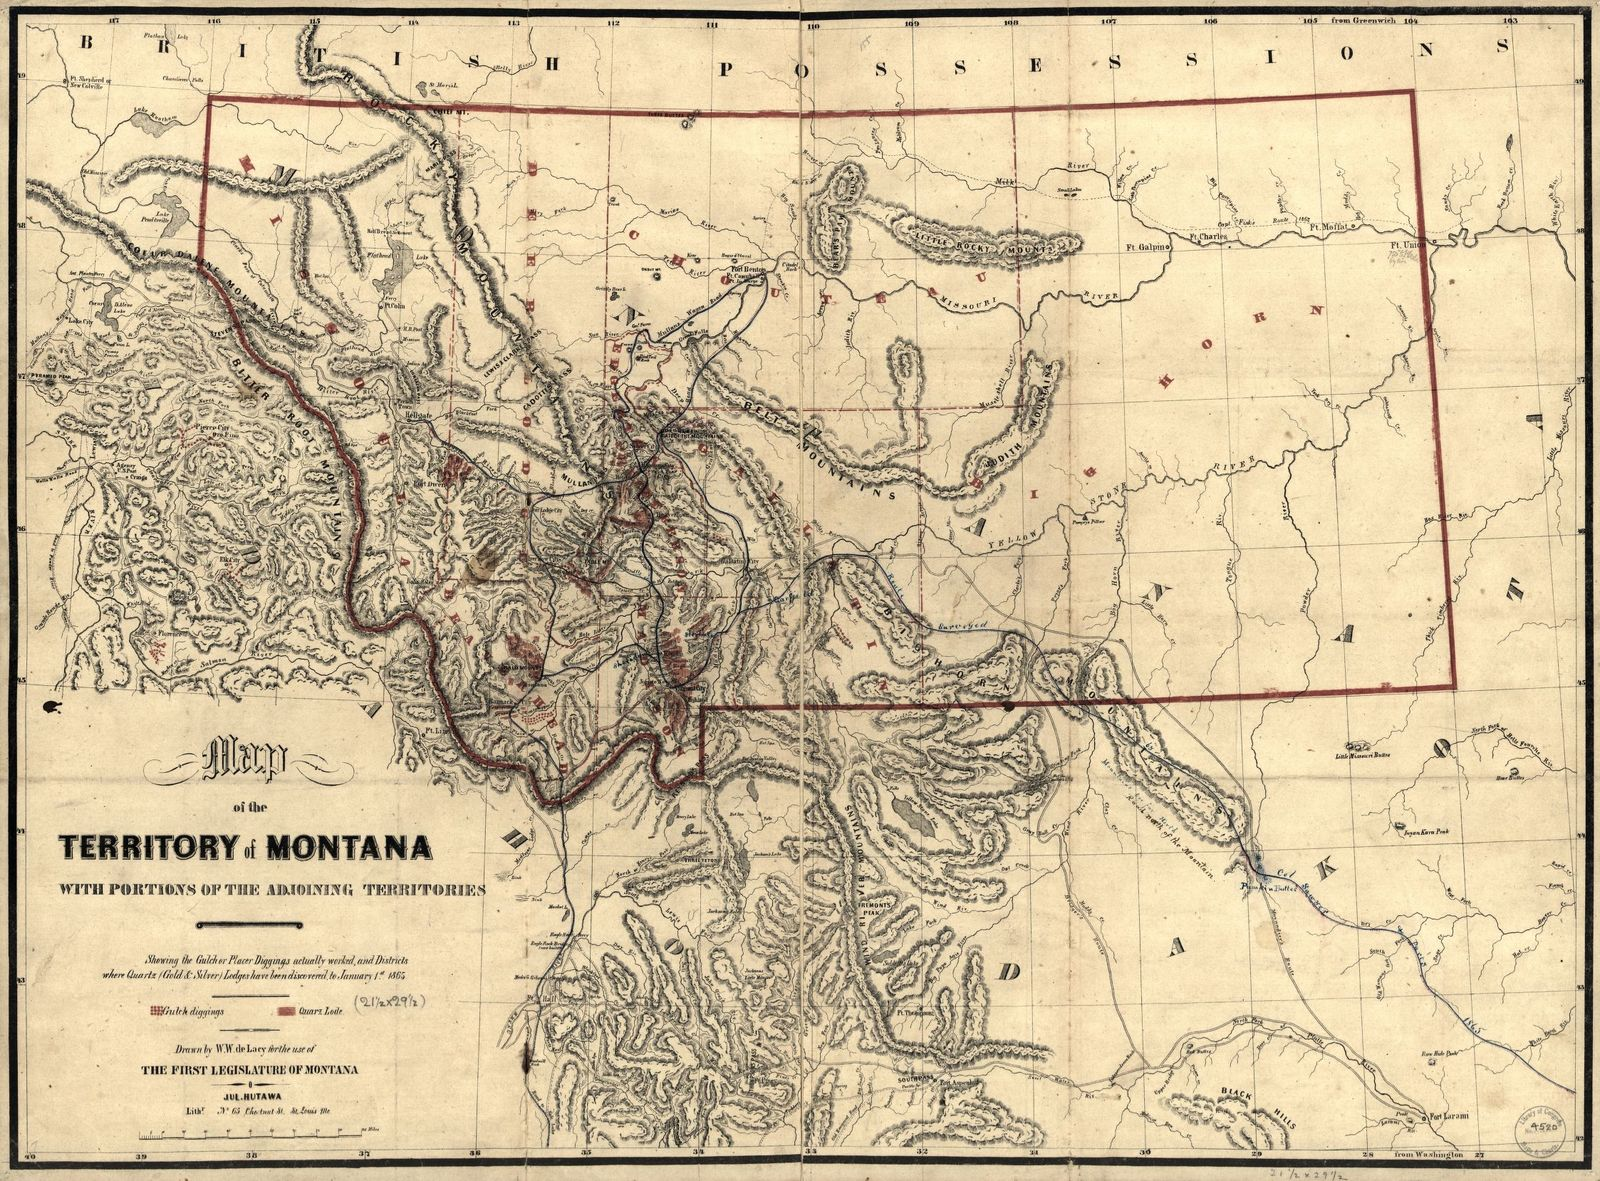 Map of the territory of Montana with portions of the adjoining territories : showing the gulch or placer diggings actually worked and districts where quartz (gold & silver) lodges have been discovered to January 1st 1865 /